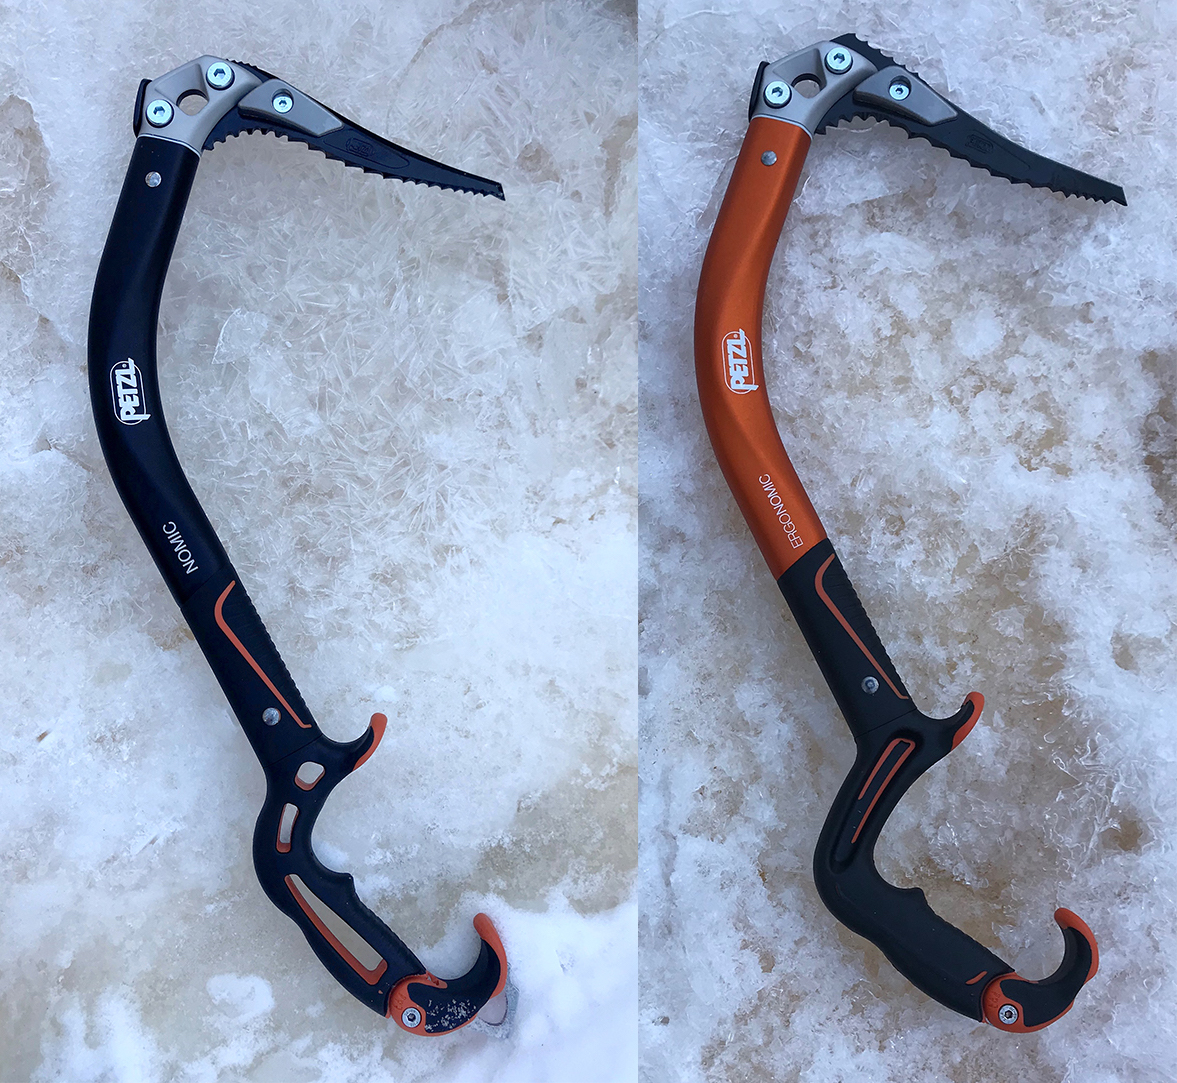 The new versions of the Petzl Nomic (left) and Ergonomic ice tools. [Photo] Chris Van Leuven